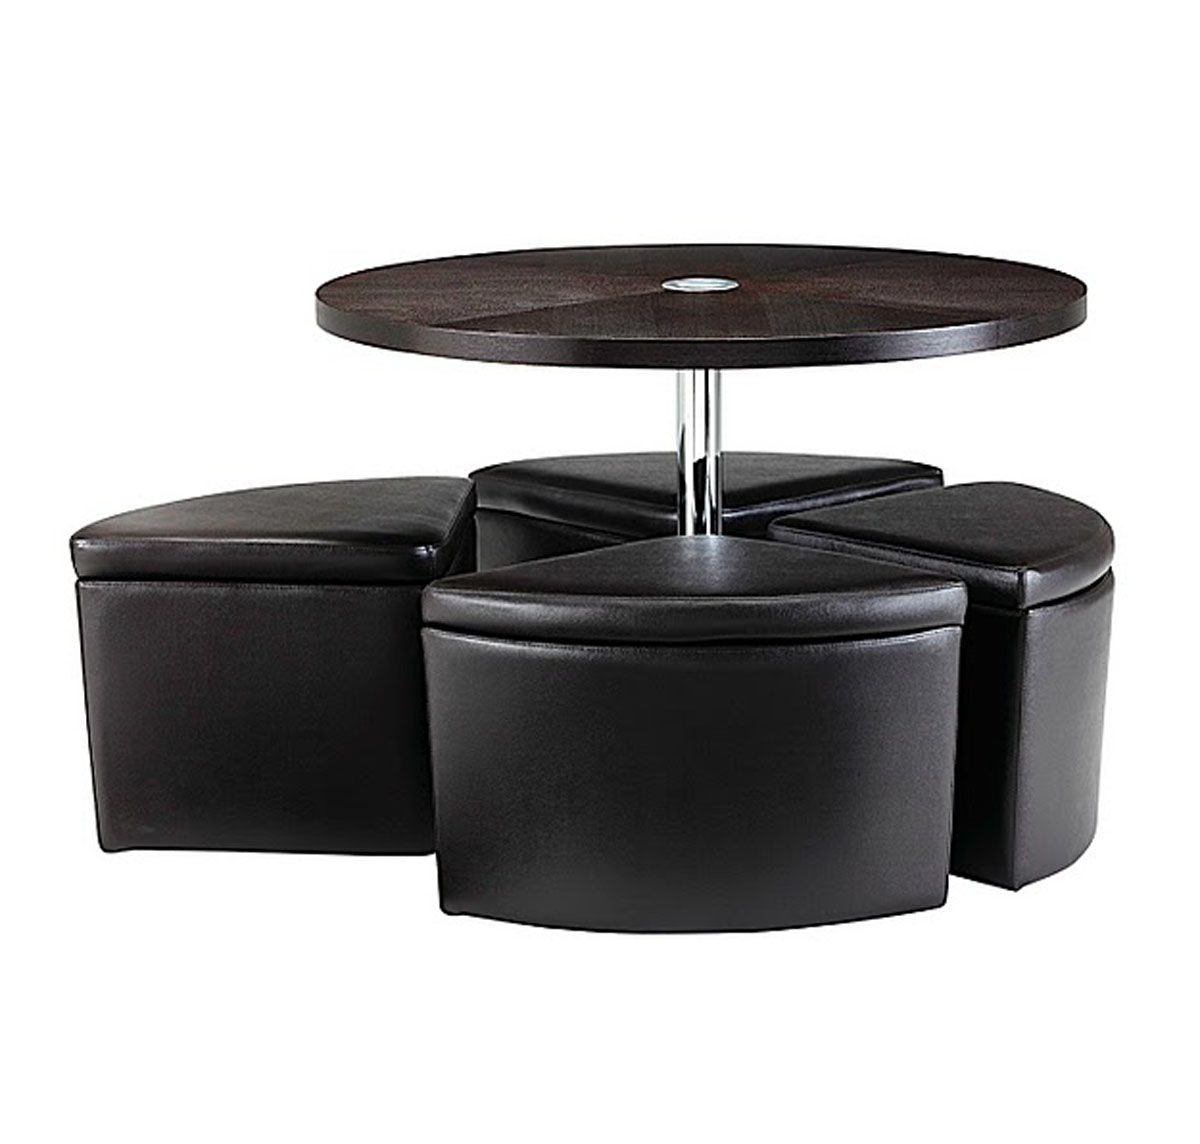 Ottomans | Sitcom Furniture Sedona Round Coffee Table W Ottomans Flap Stores